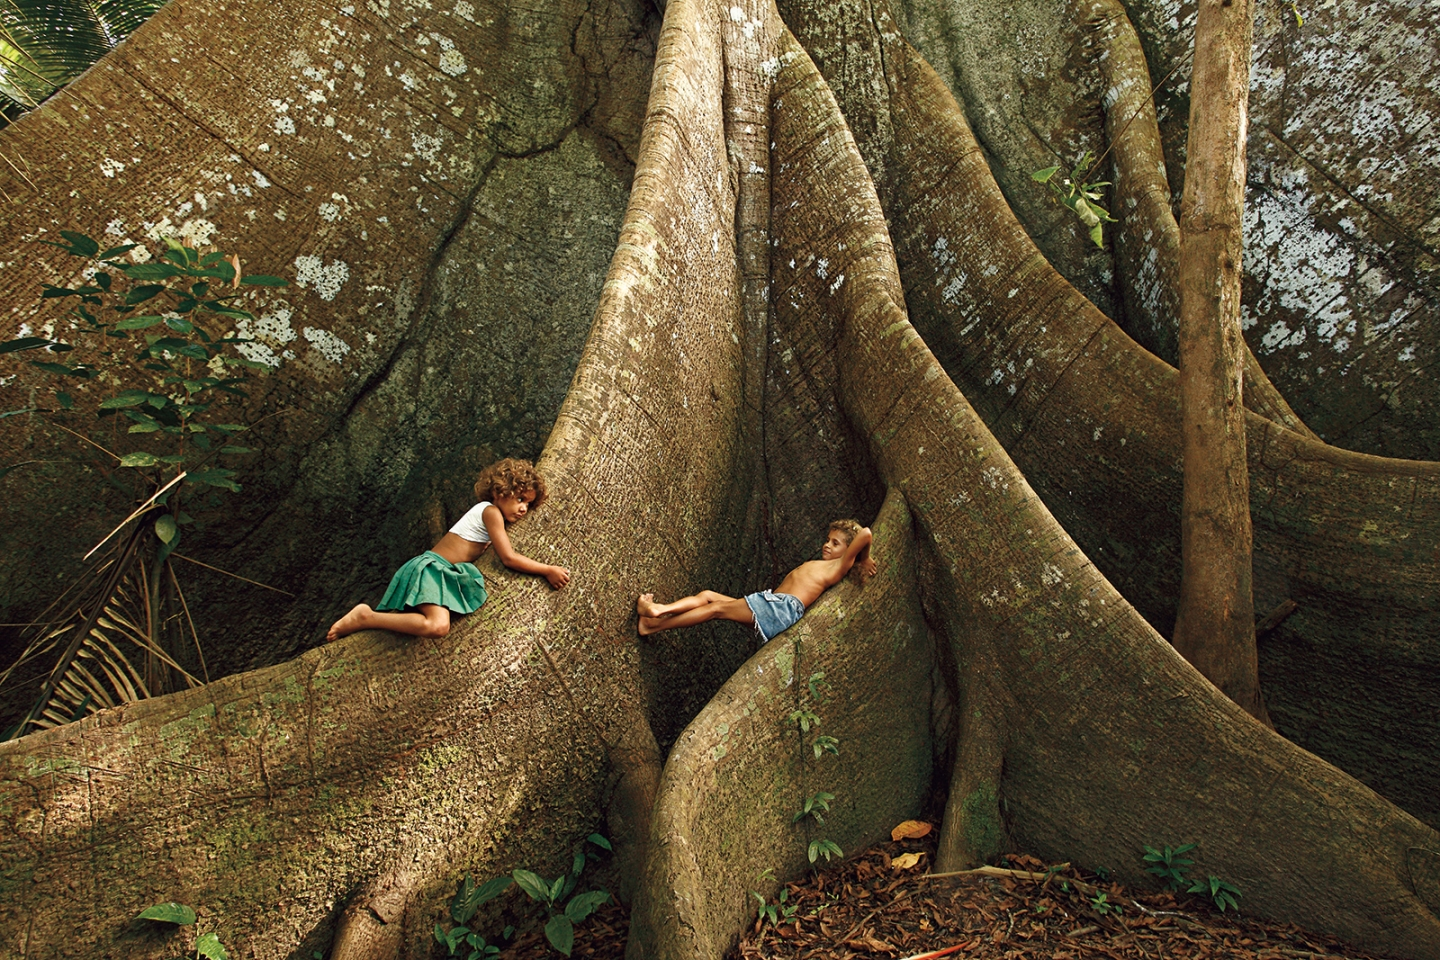 Children playing in an old kapok tree by the Jufari River, Amazonas. Araquém Alcântara